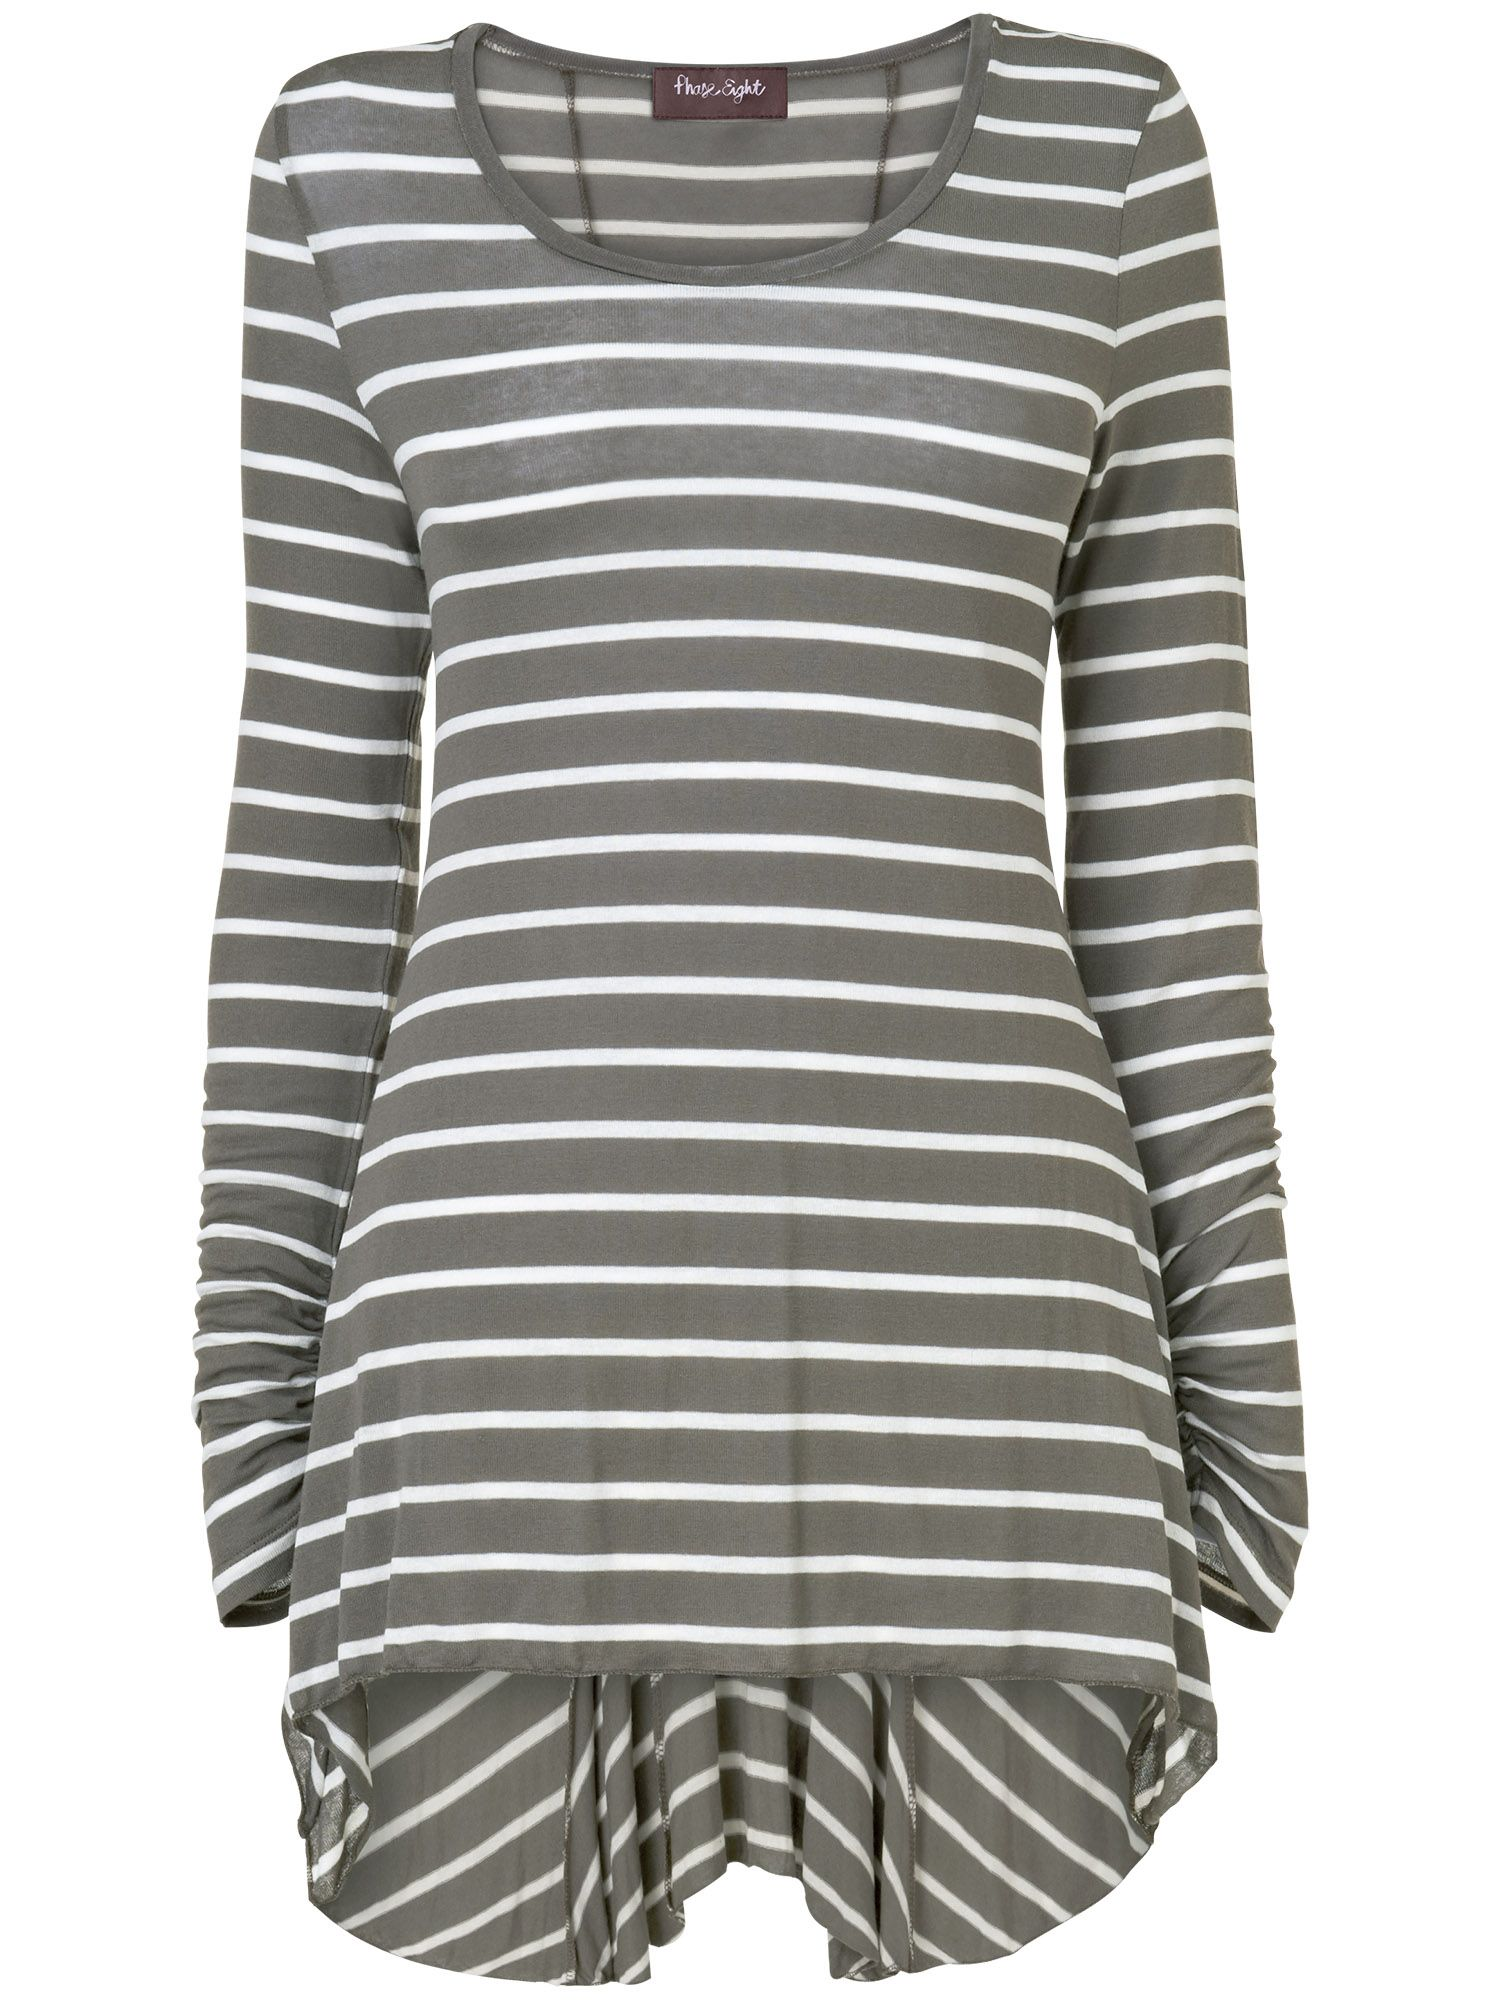 Stripe tegan godet top